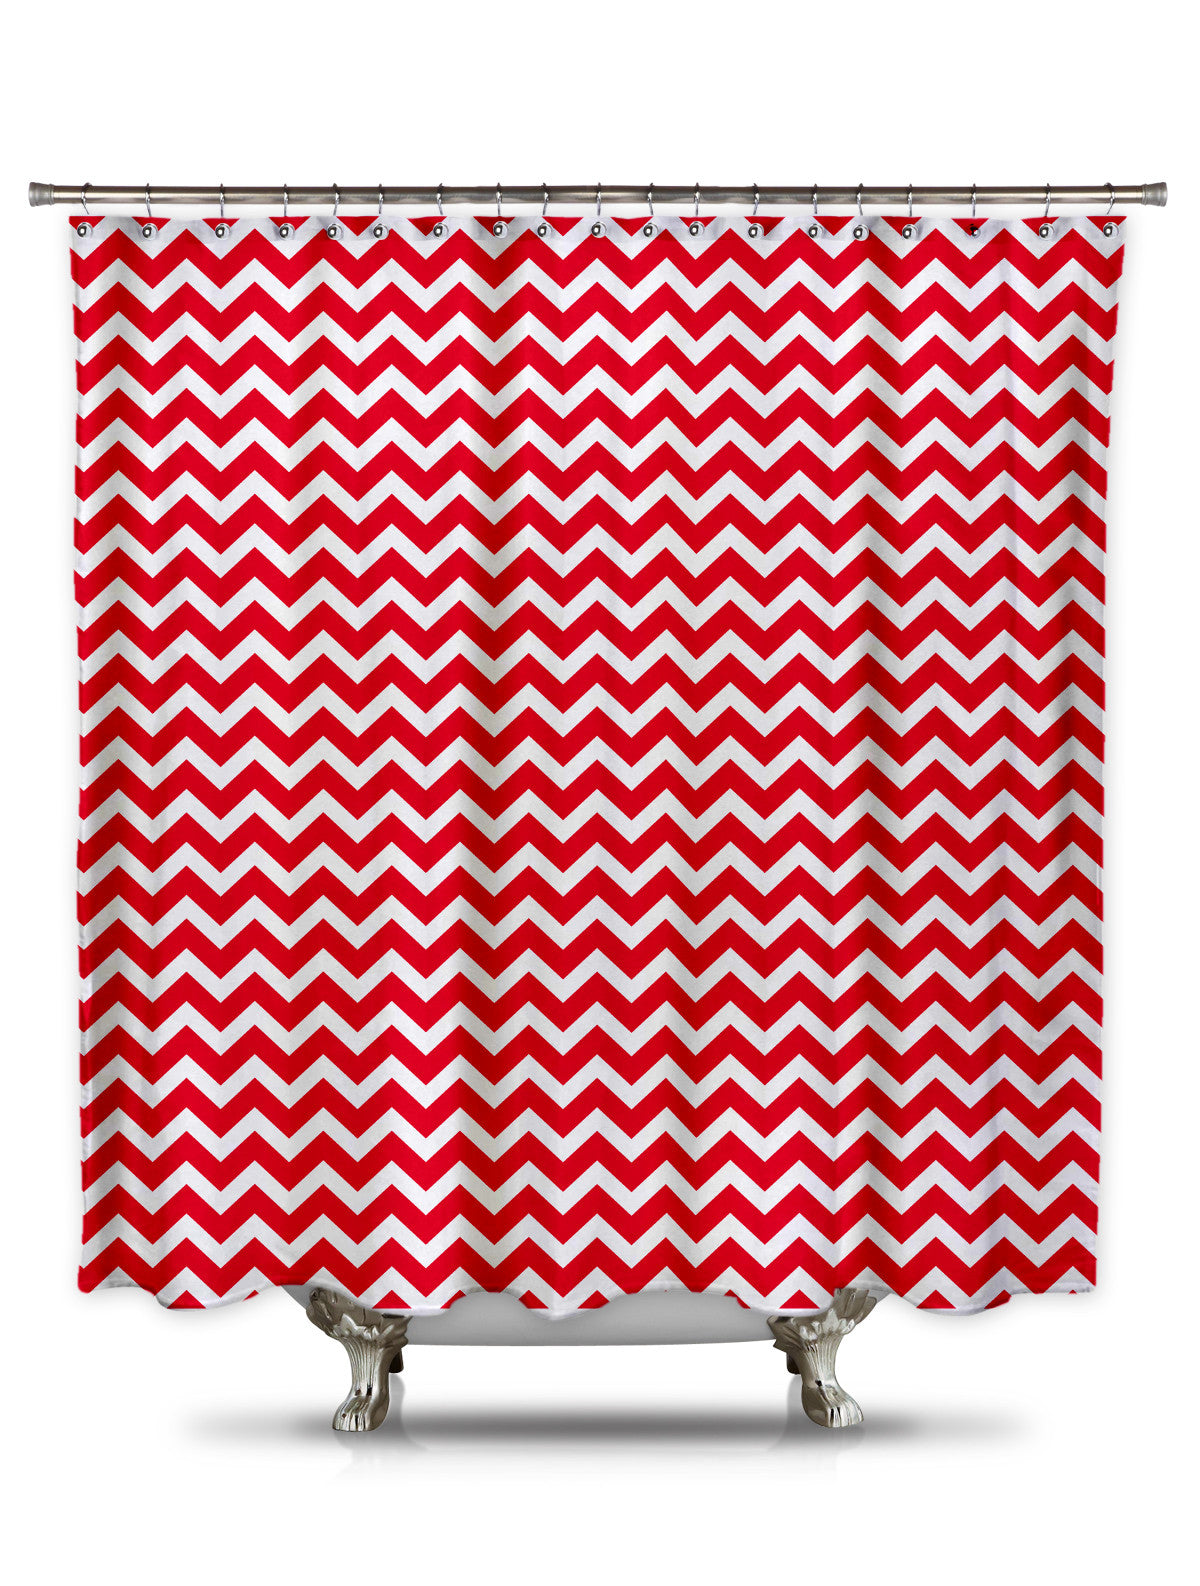 Red and White Chevron Fabric Shower Curtain